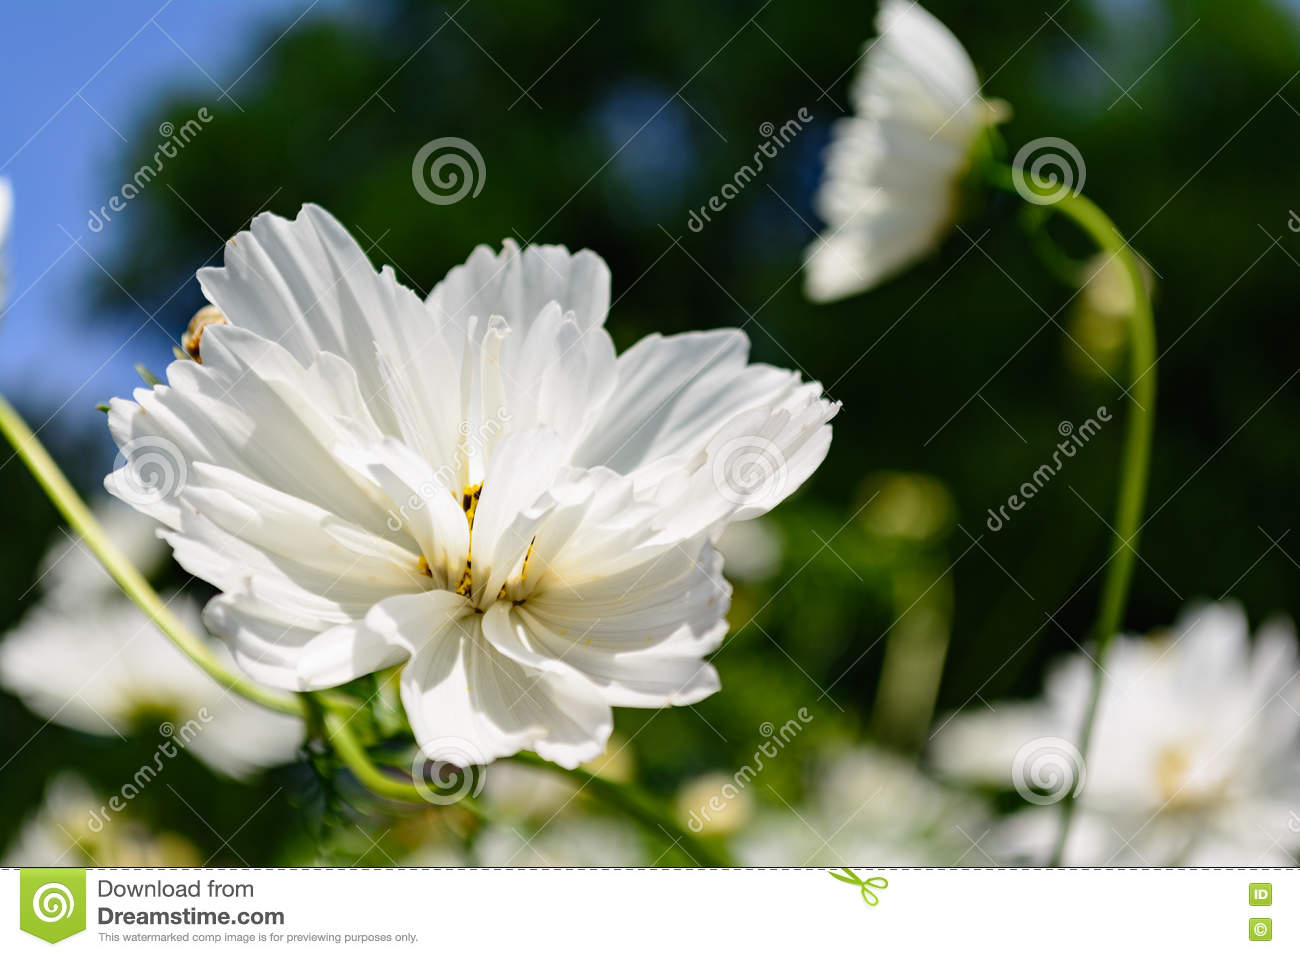 White Flower Selective Focus Foreground Stock Photo Image Of Green